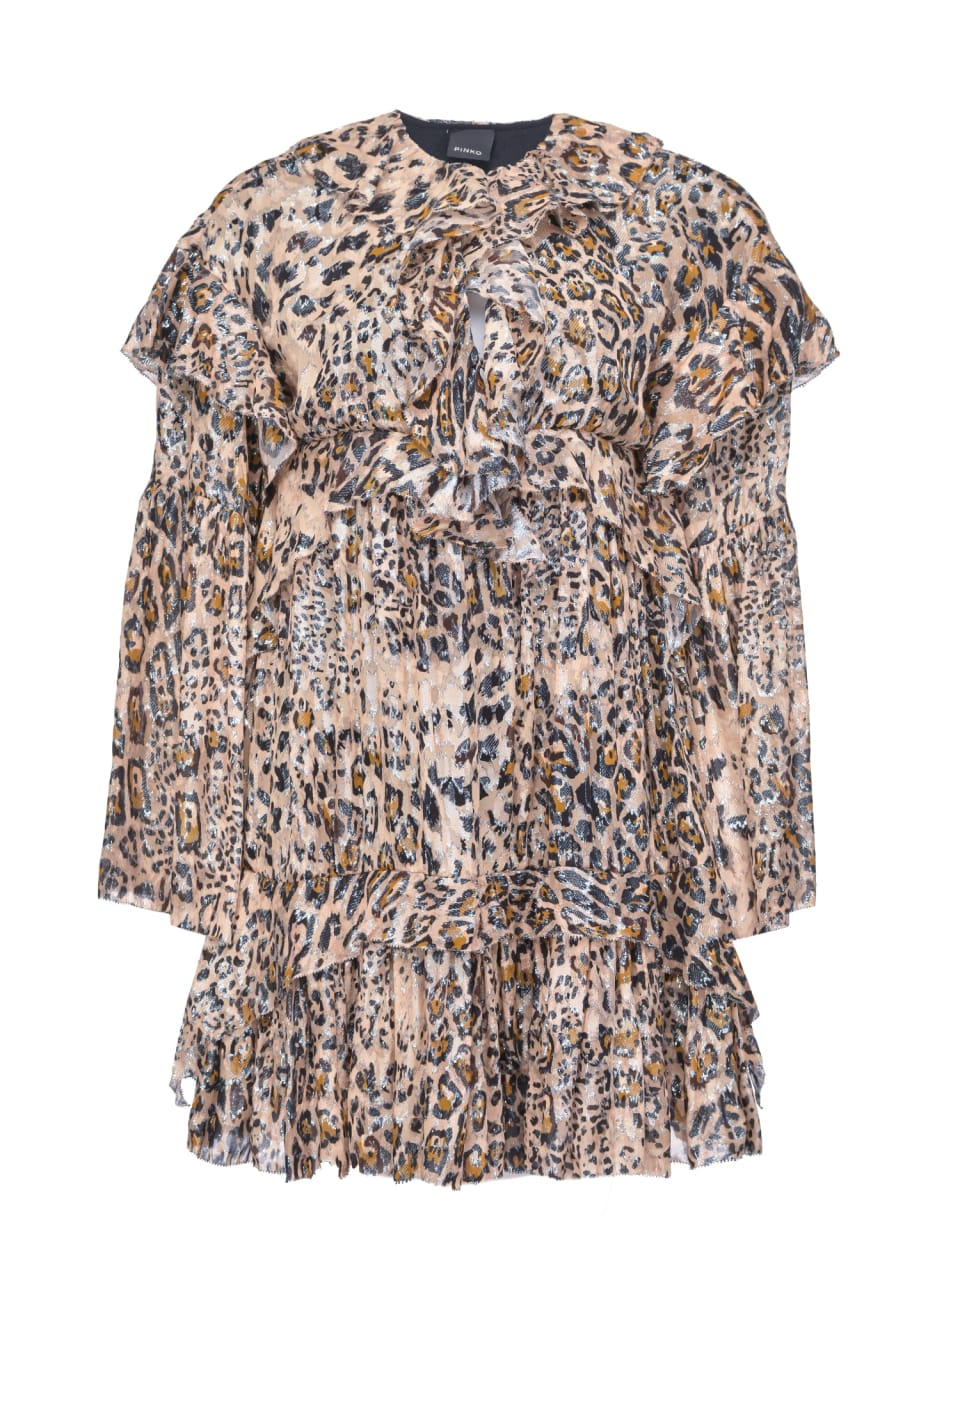 Fil coupé leopard print dress - Pinko